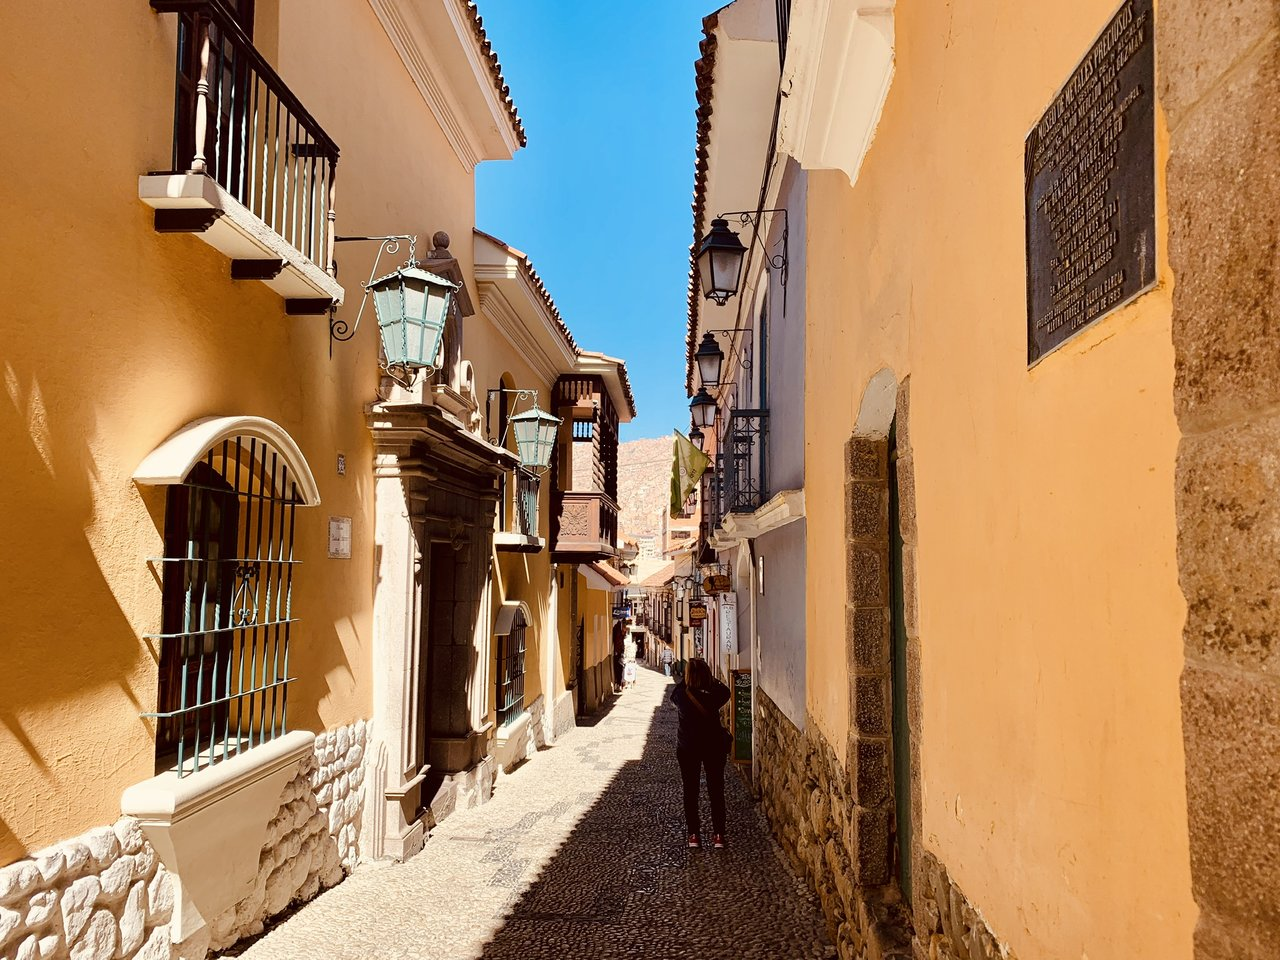 Calle Jaen  | Photo taken by Flaminia R